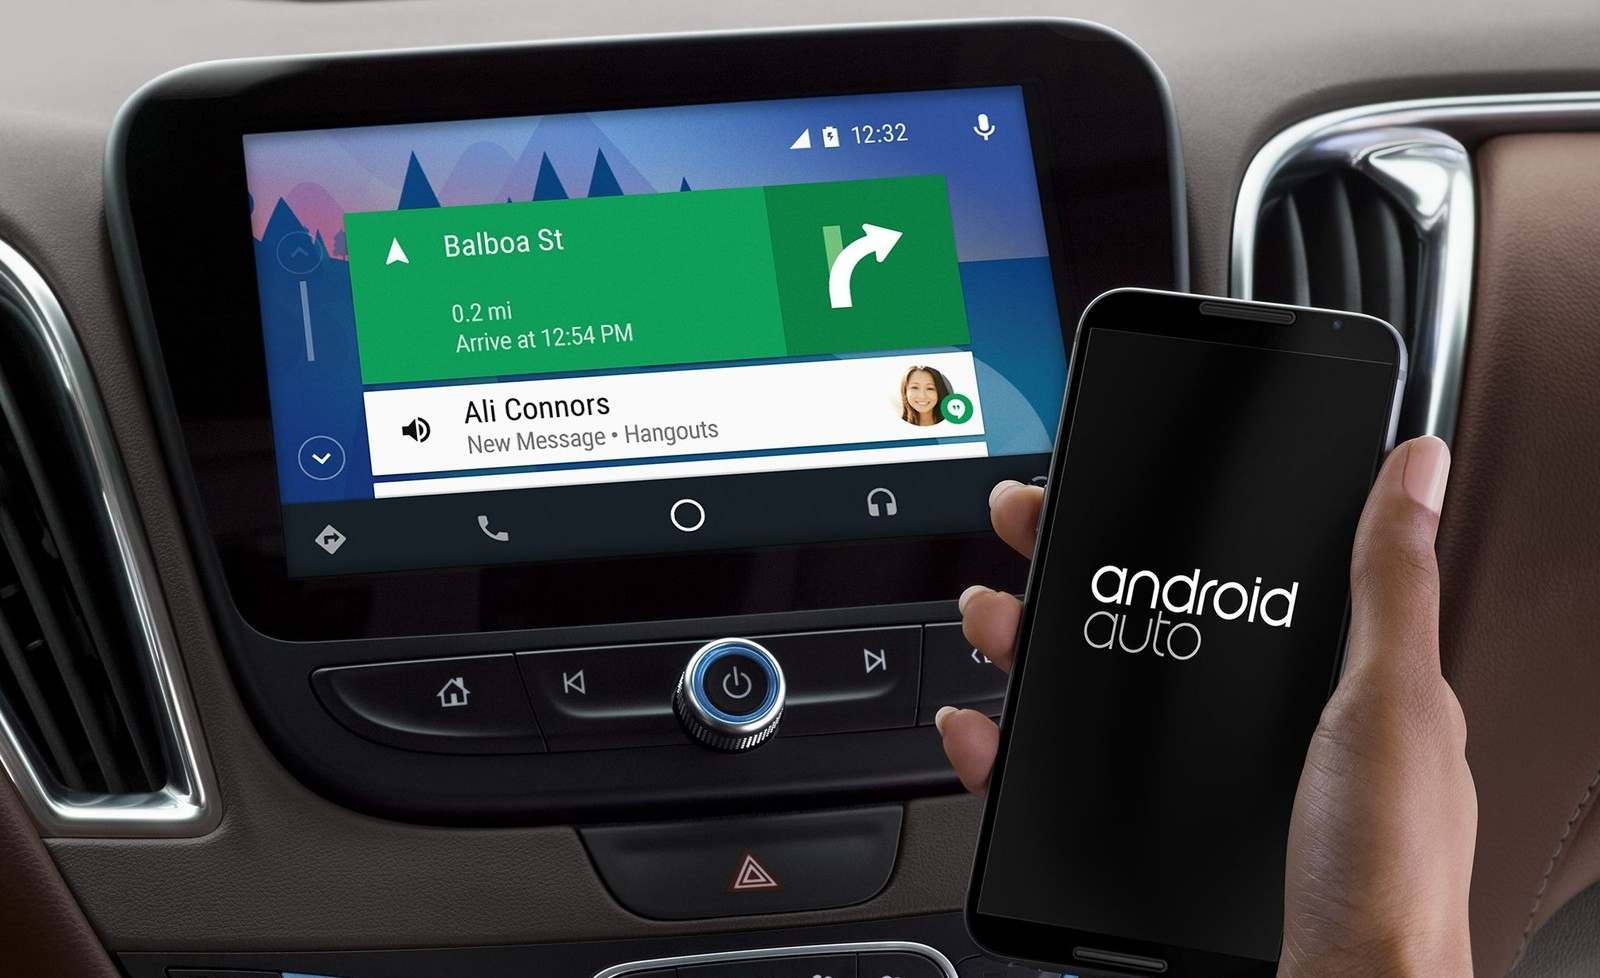 Android Auto Display Winnipeg